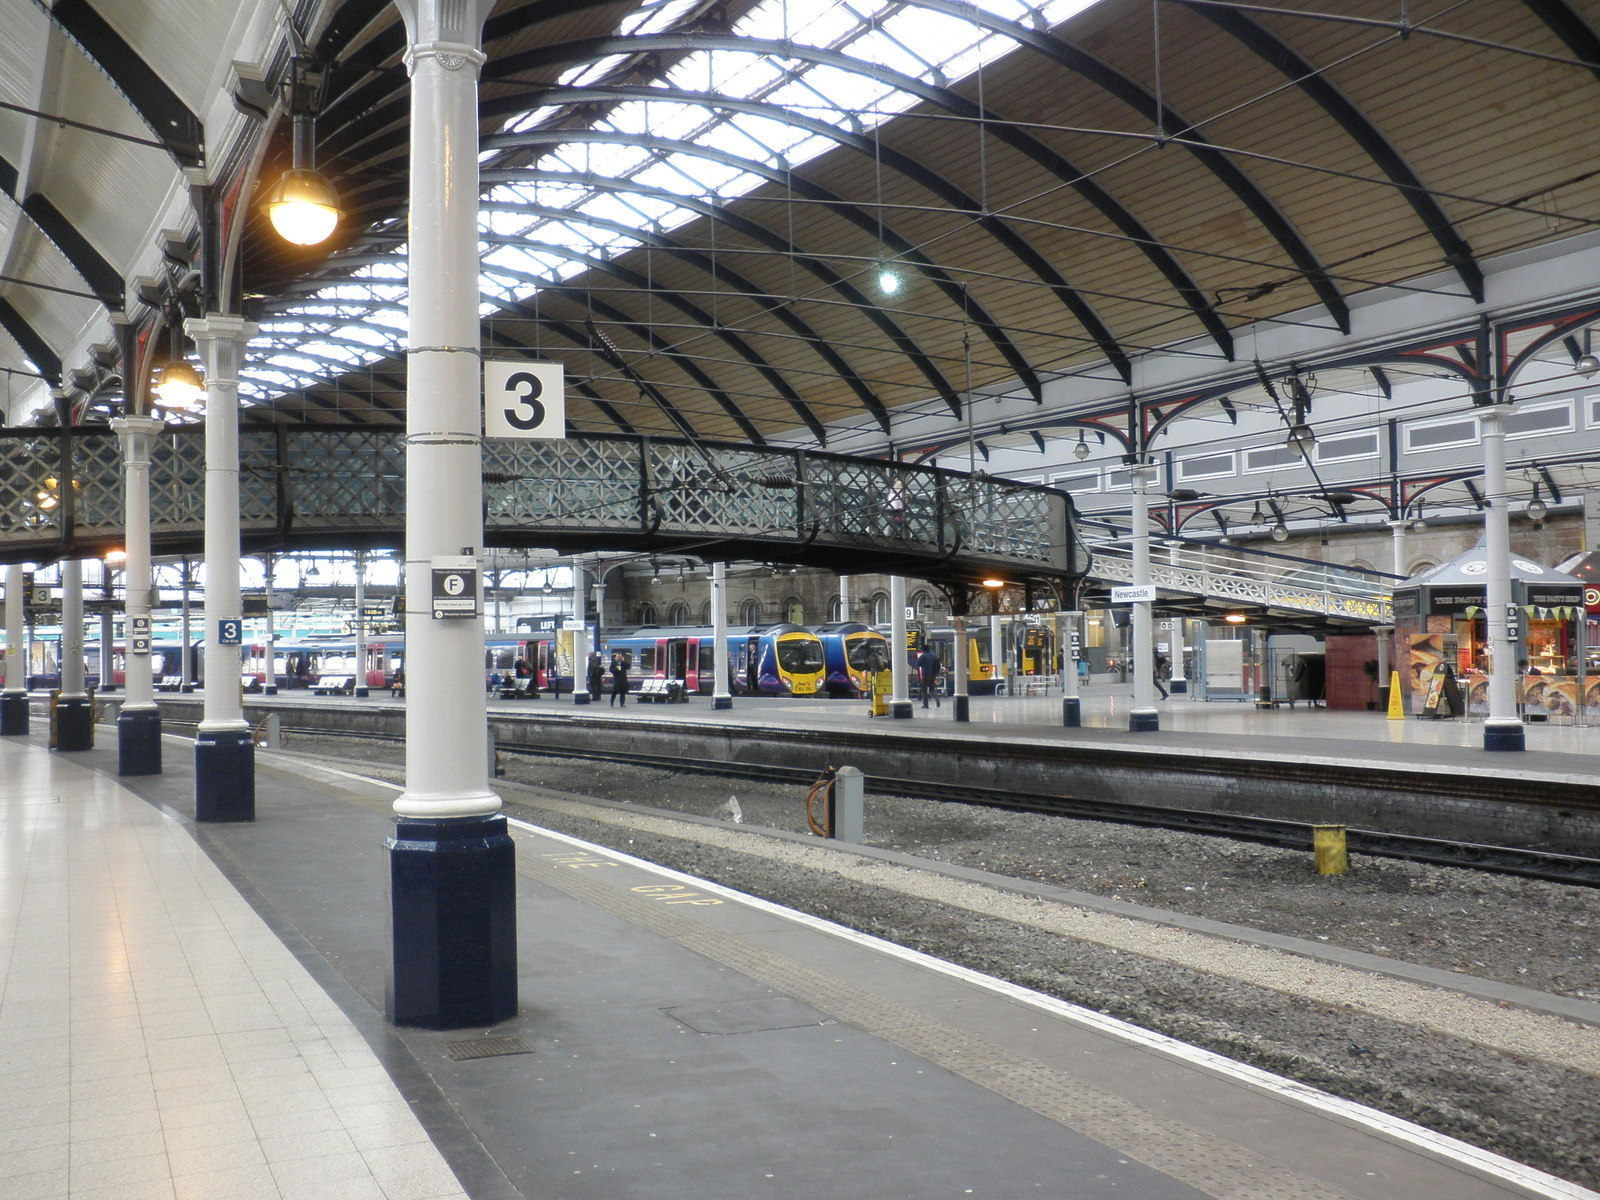 Photograph of Platforms 2 & 3 in Newcastle Central Station